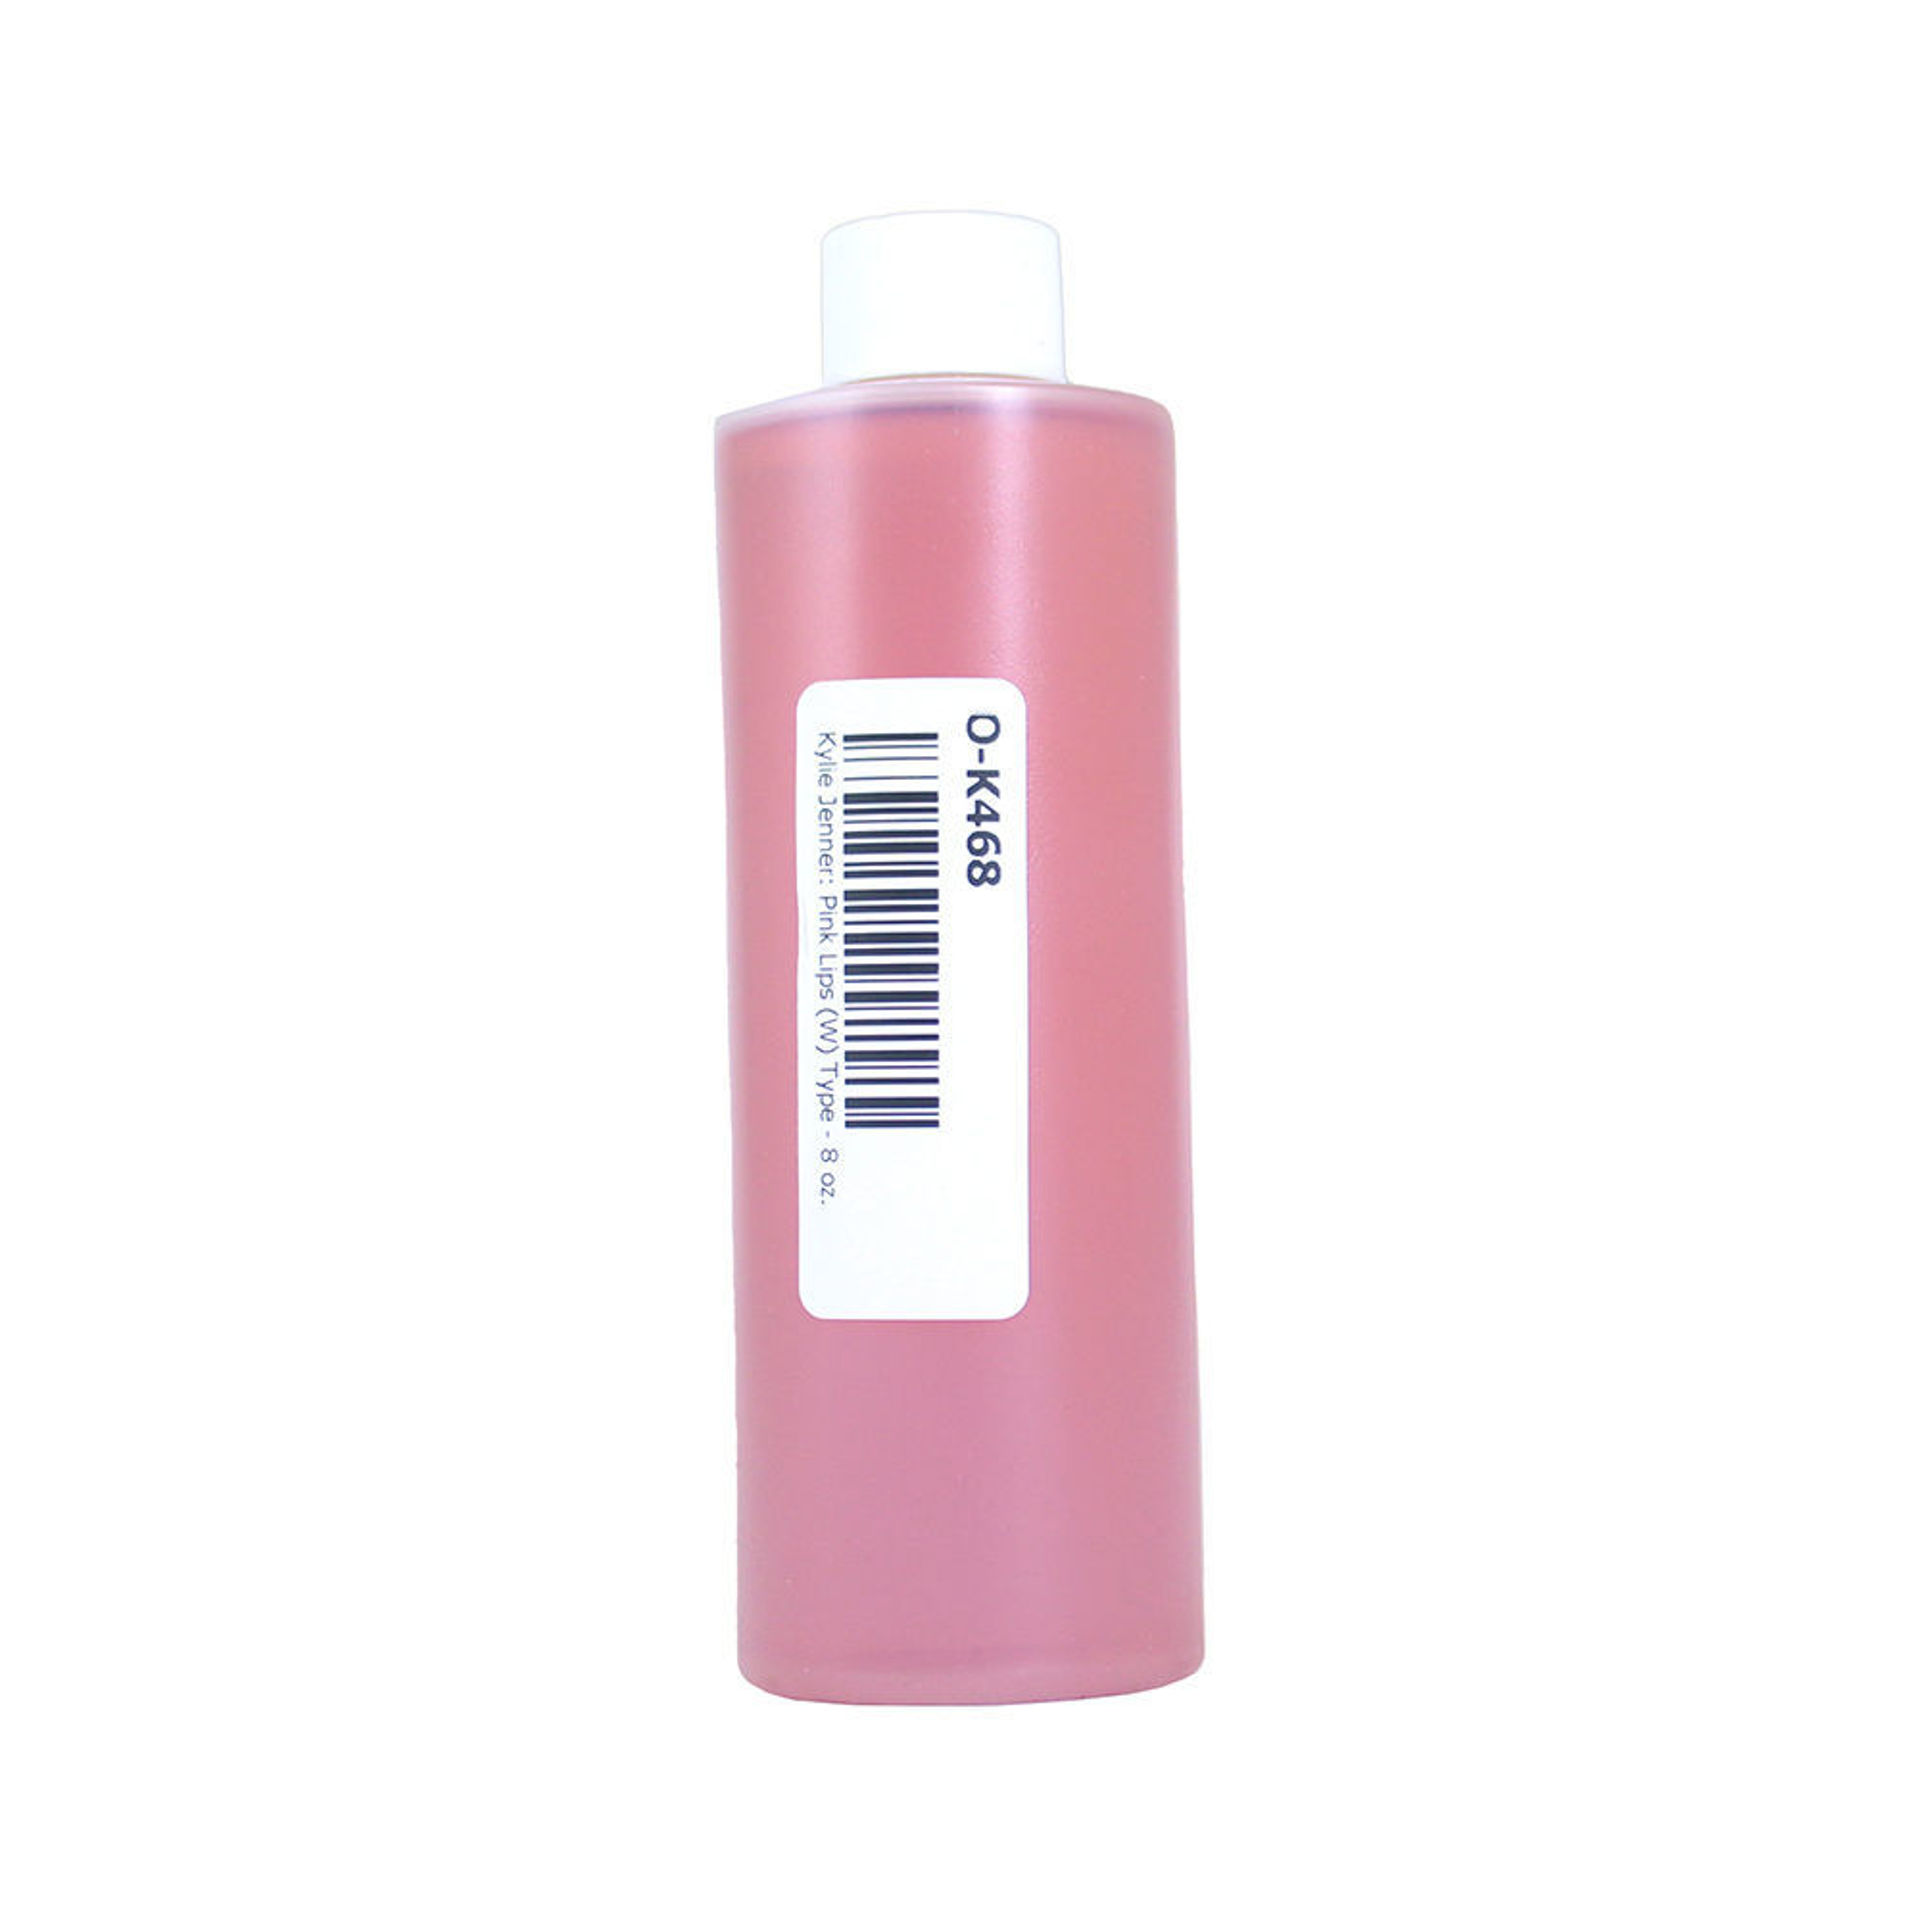 Picture of Kylie Jenner: Pink Lips (W) Type - 8 oz.